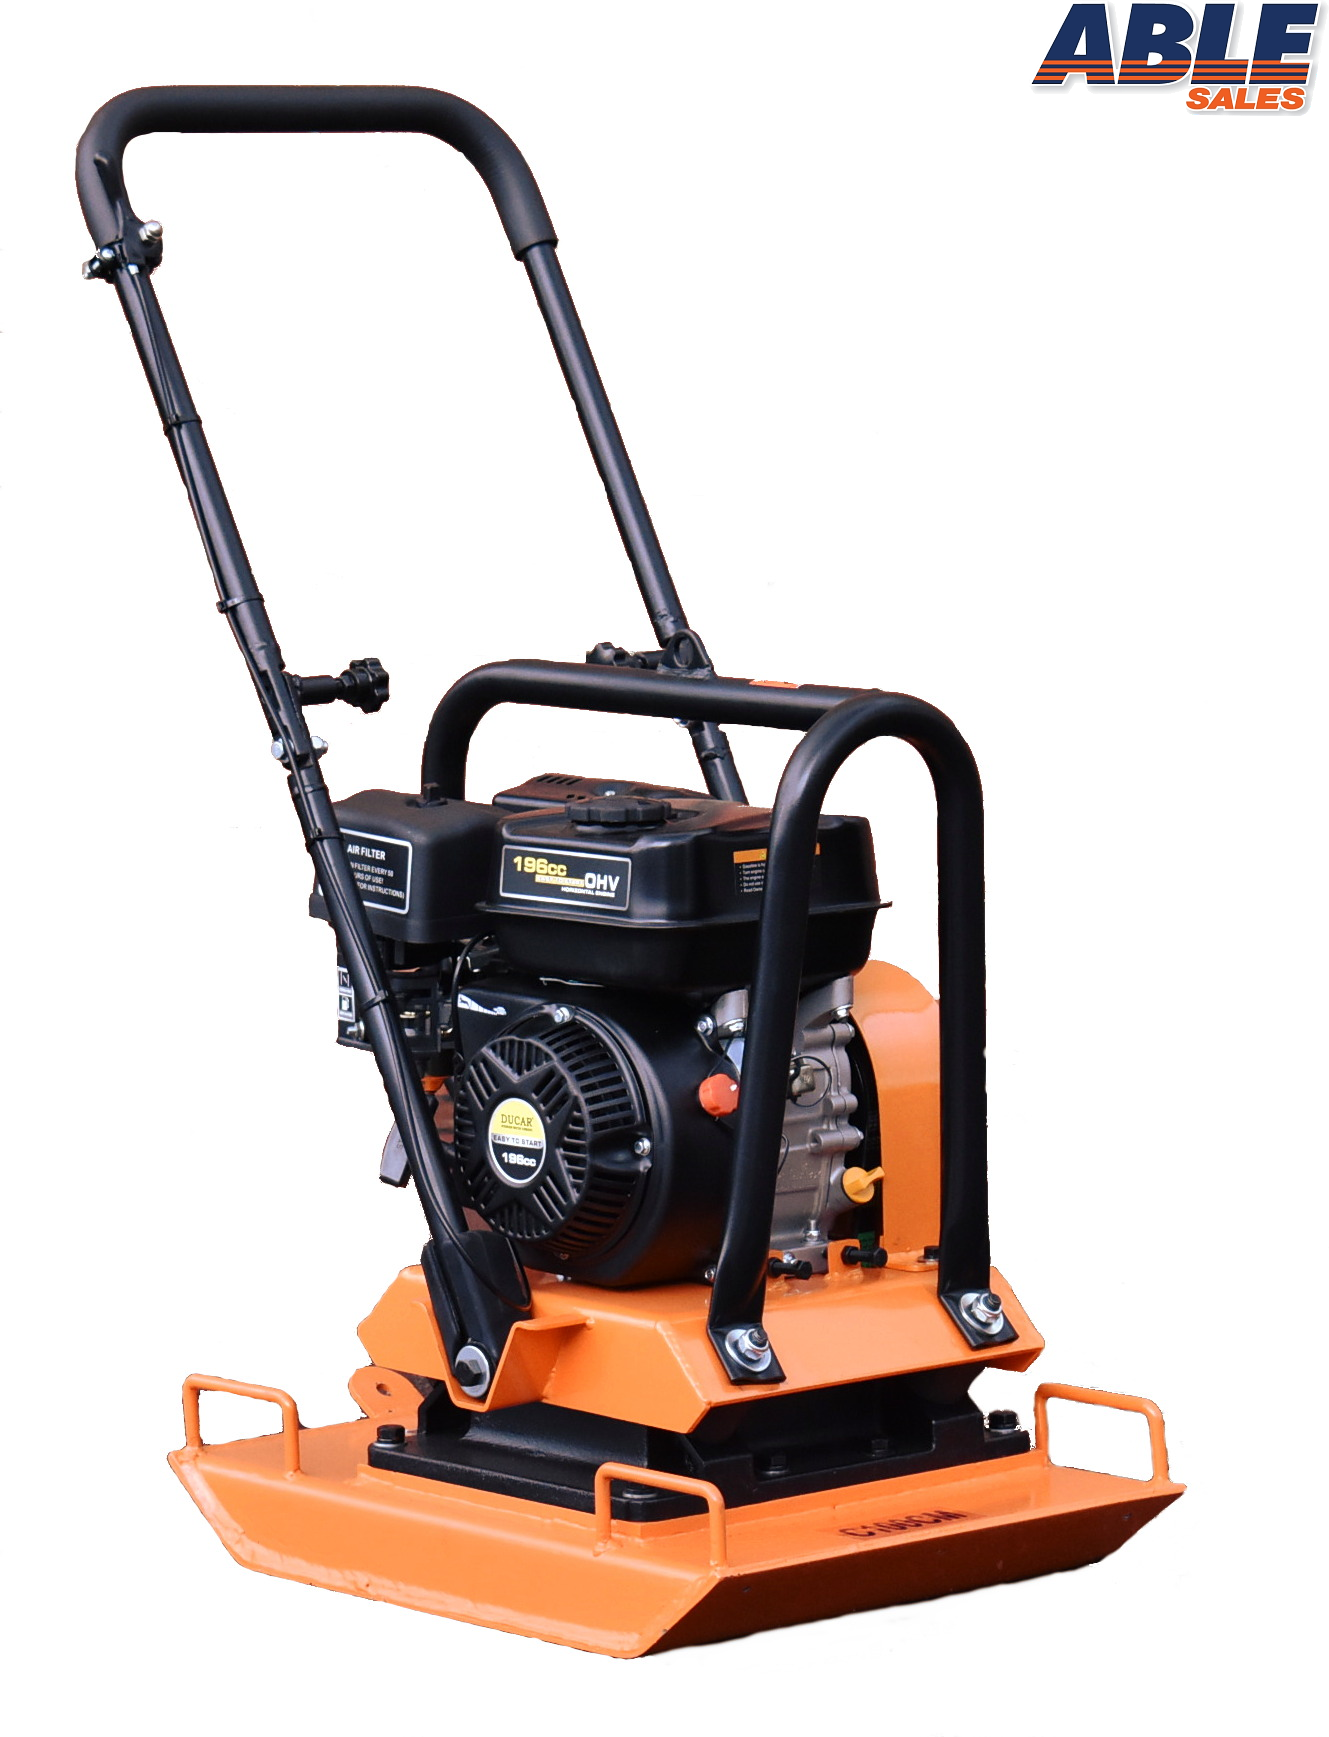 Plate Compactor 6 5hp 100kg